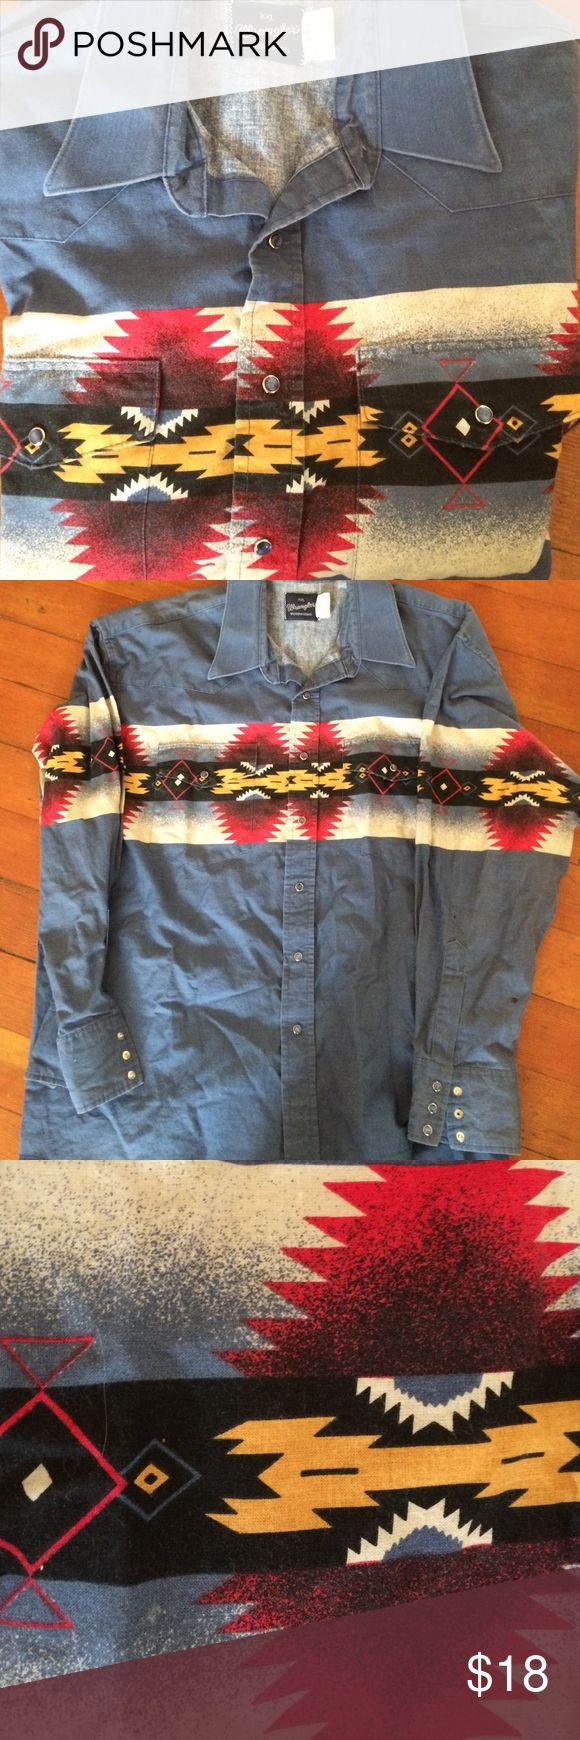 Vintage Western Wrangler Shirt One of a kind vintage western shirt by Wrangler. Nice button up shirt with tribal pattern. No signs of wear. Originally made for men, but a girl can definitely rock it Wrangler Tops Button Down Shirts